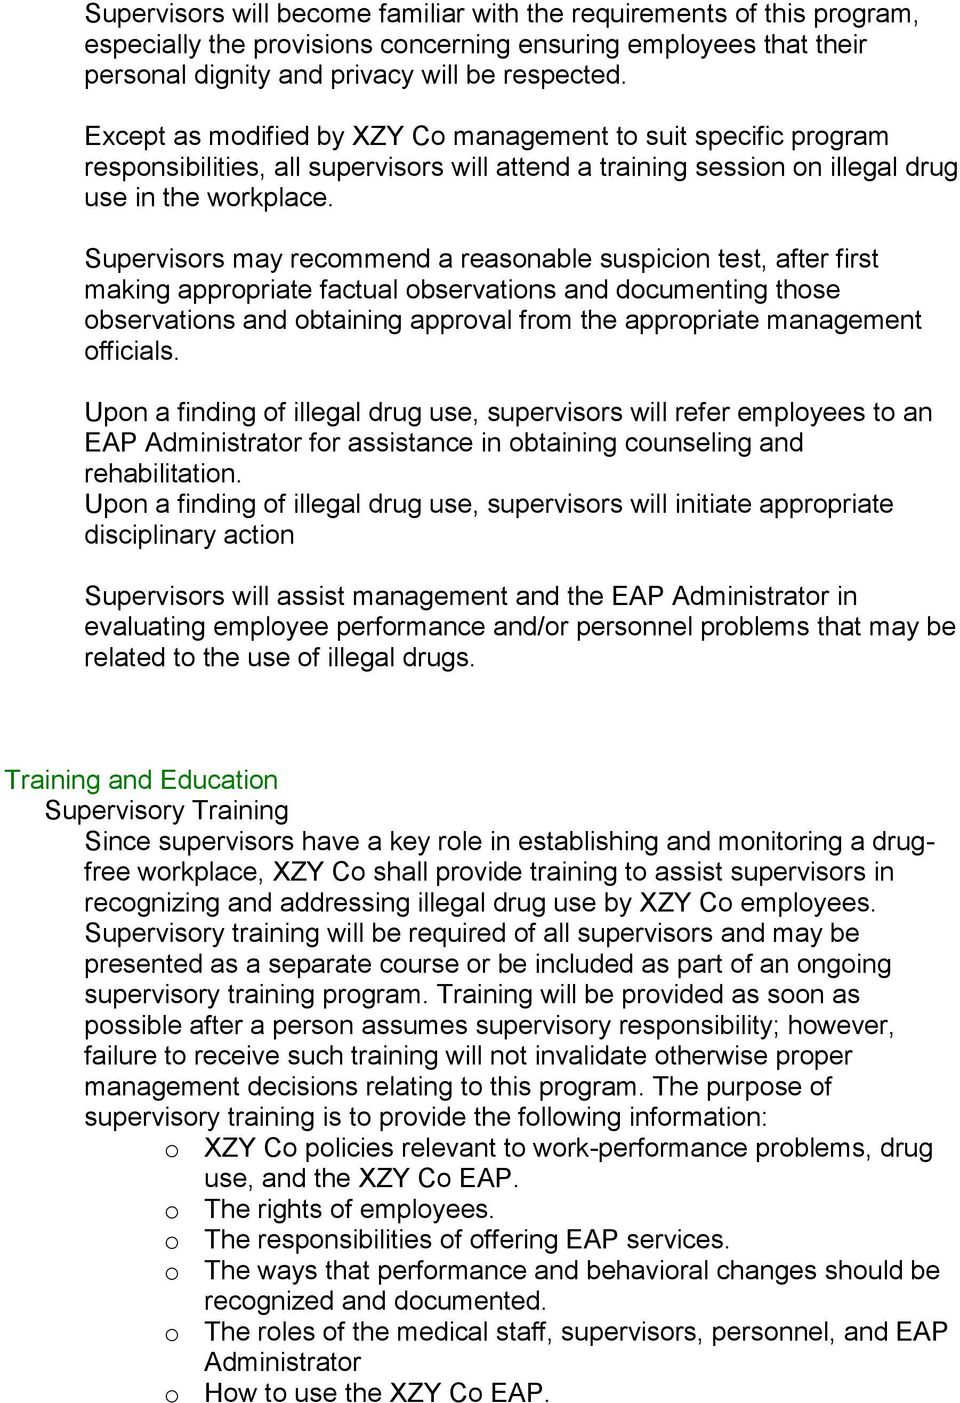 Supervisors may recommend a reasonable suspicion test, after first making appropriate factual observations and documenting those observations and obtaining approval from the appropriate management